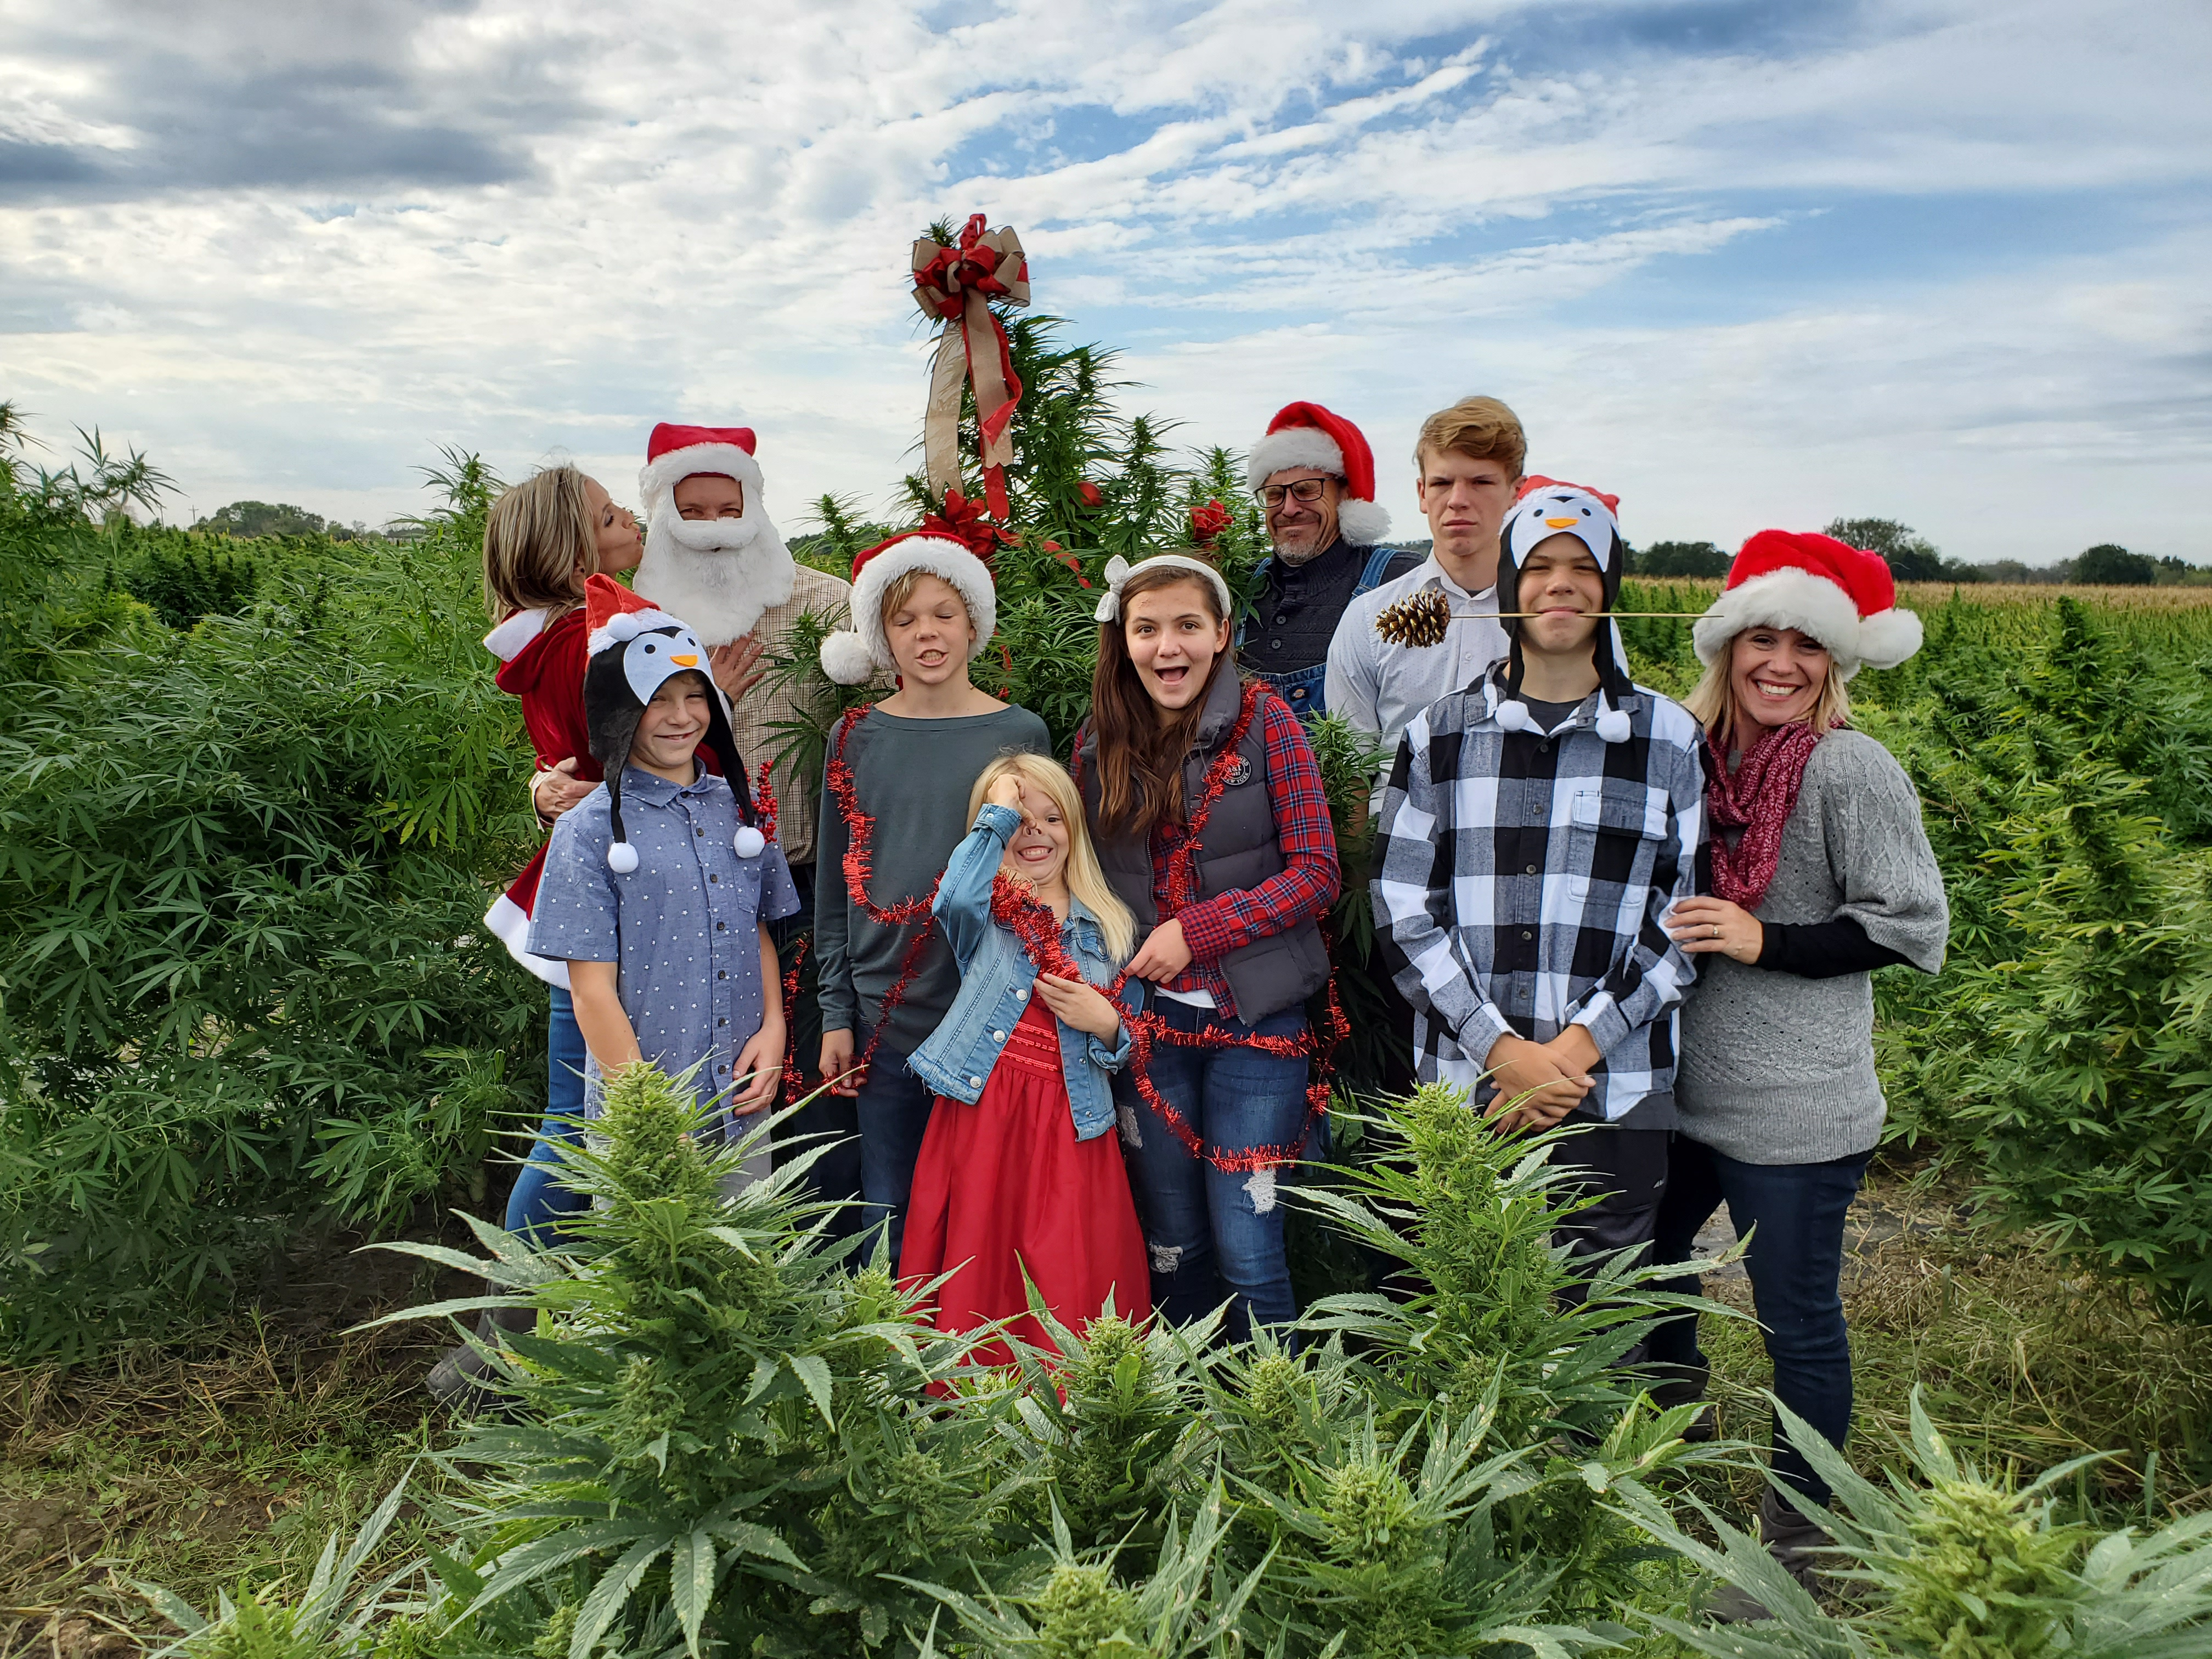 Lakc Country Growers wishes you a Hempy Holiday